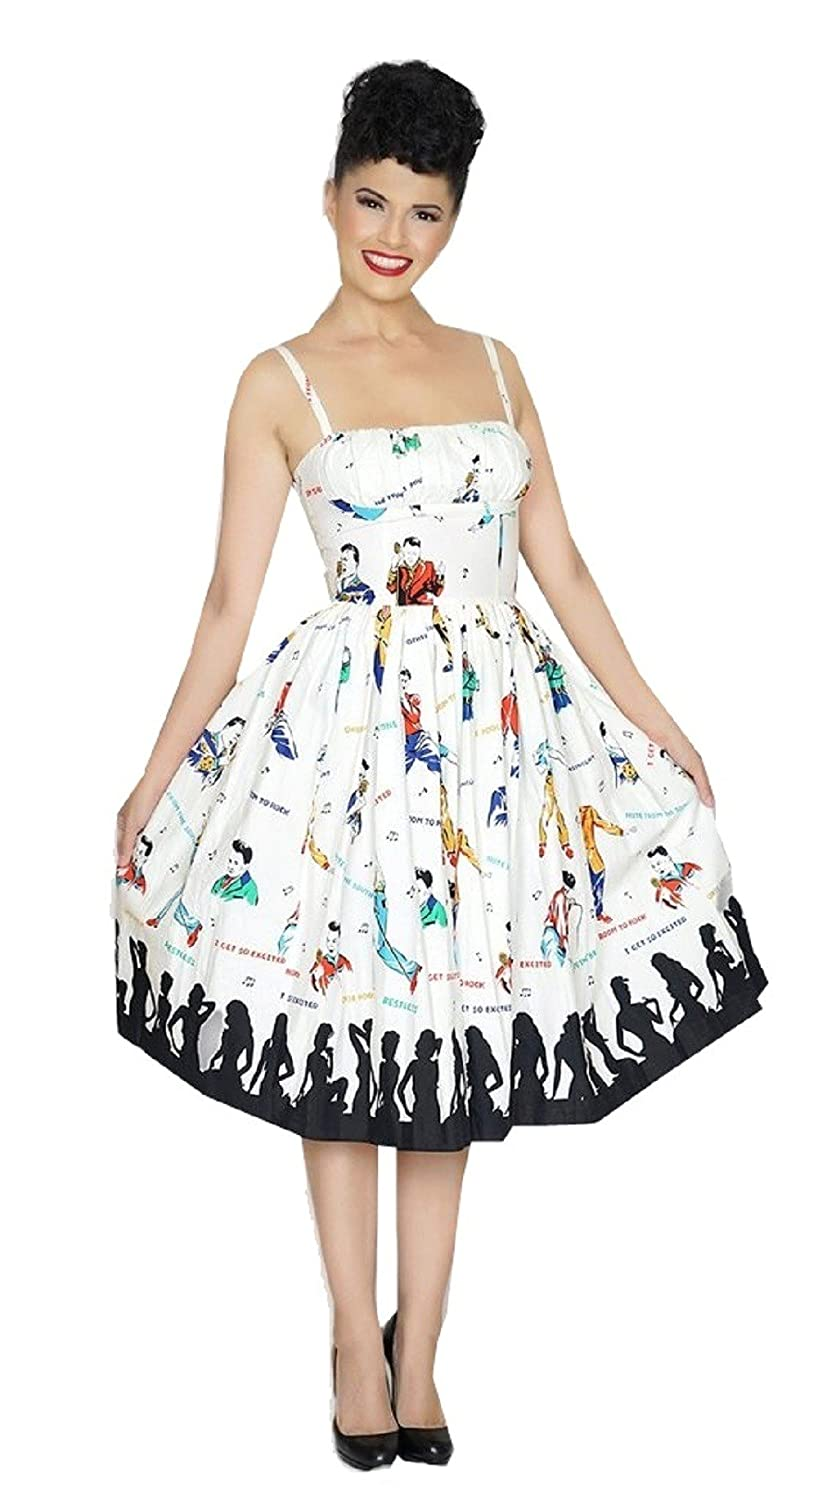 Rockabilly Dresses | Rockabilly Clothing | Viva Las Vegas Bernie Dexter Paris Dress In Rockabilly Idol Print Retro Inspired $172.00 AT vintagedancer.com